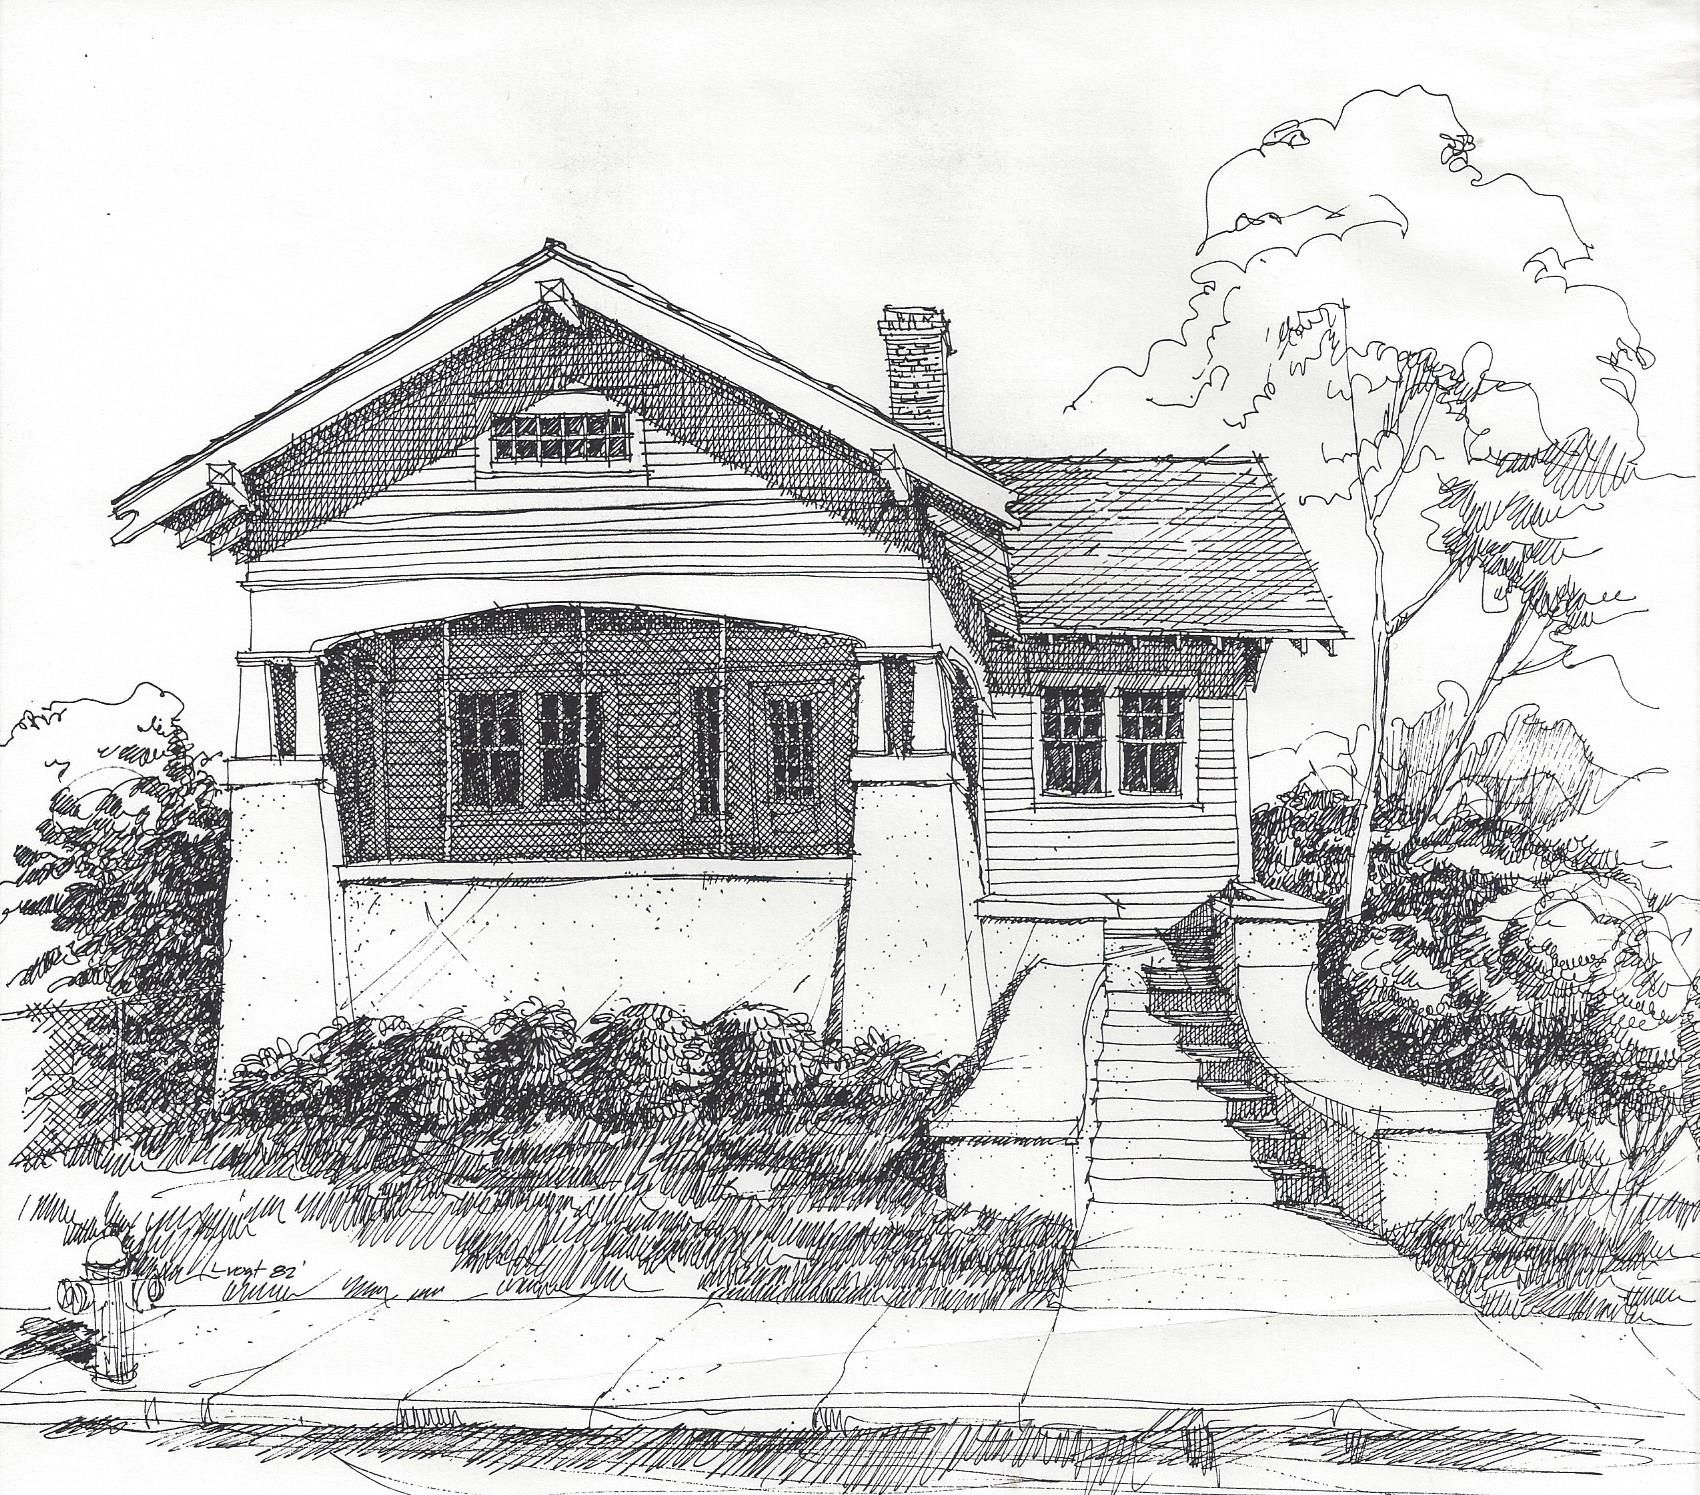 bungalow House sketch, House drawing, Simple house drawing